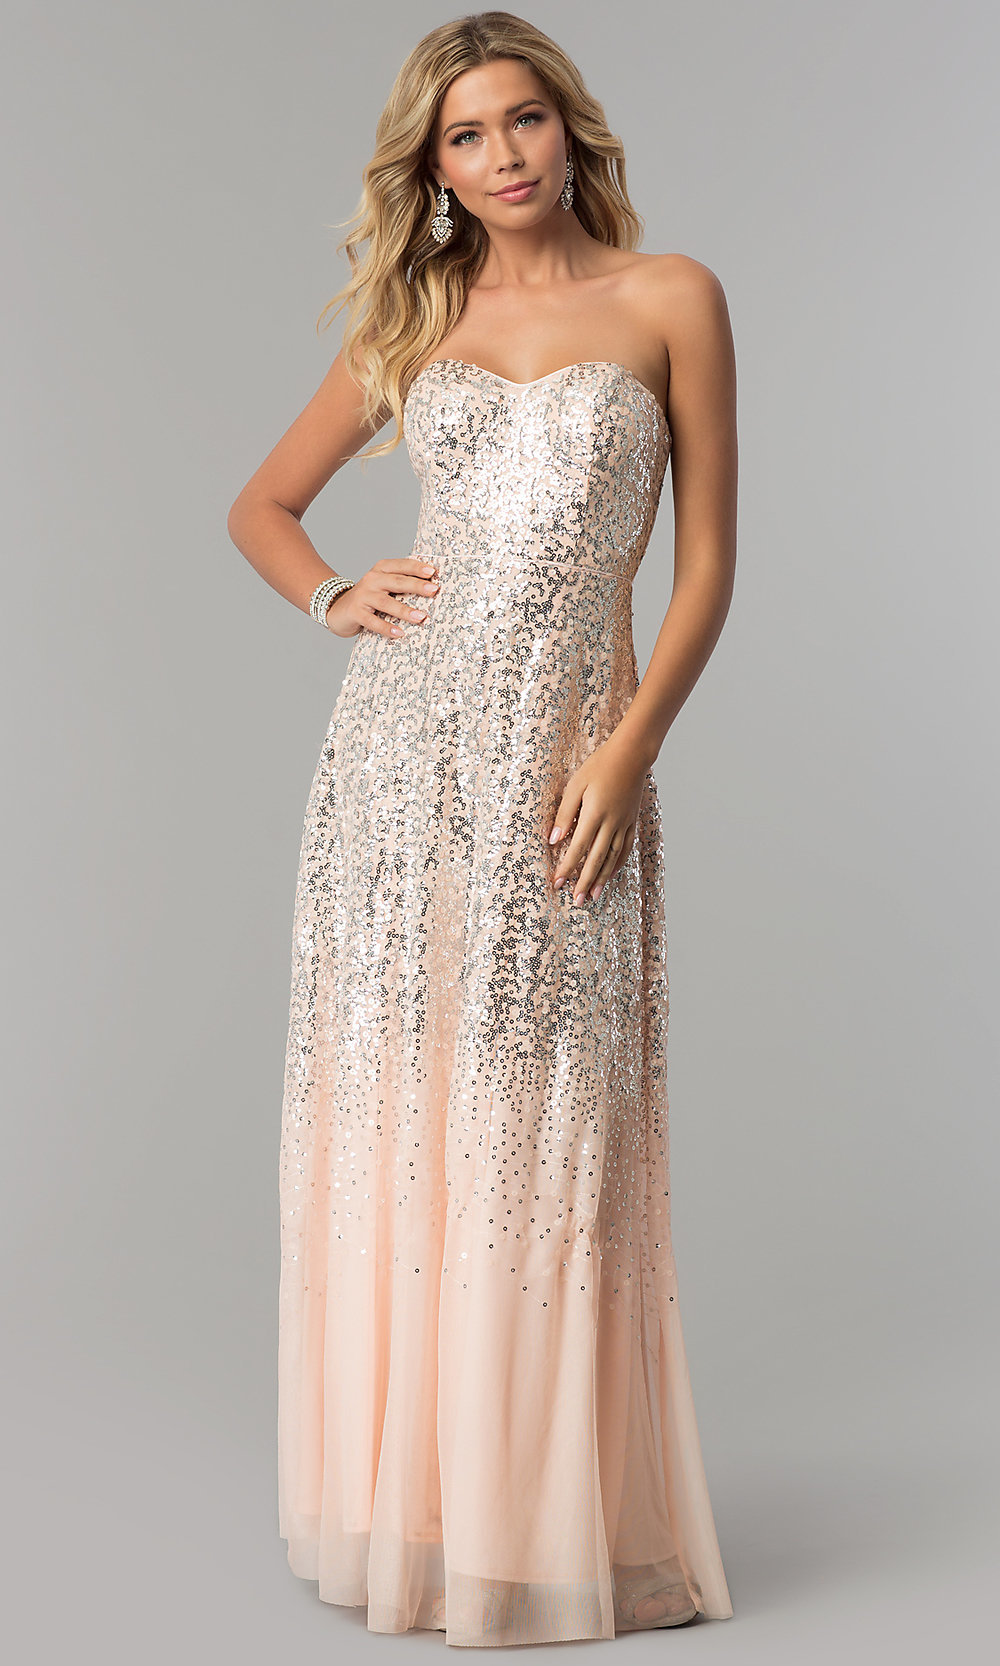 Strapless Sequin Prom Dress in Blush Pink - PromGirl